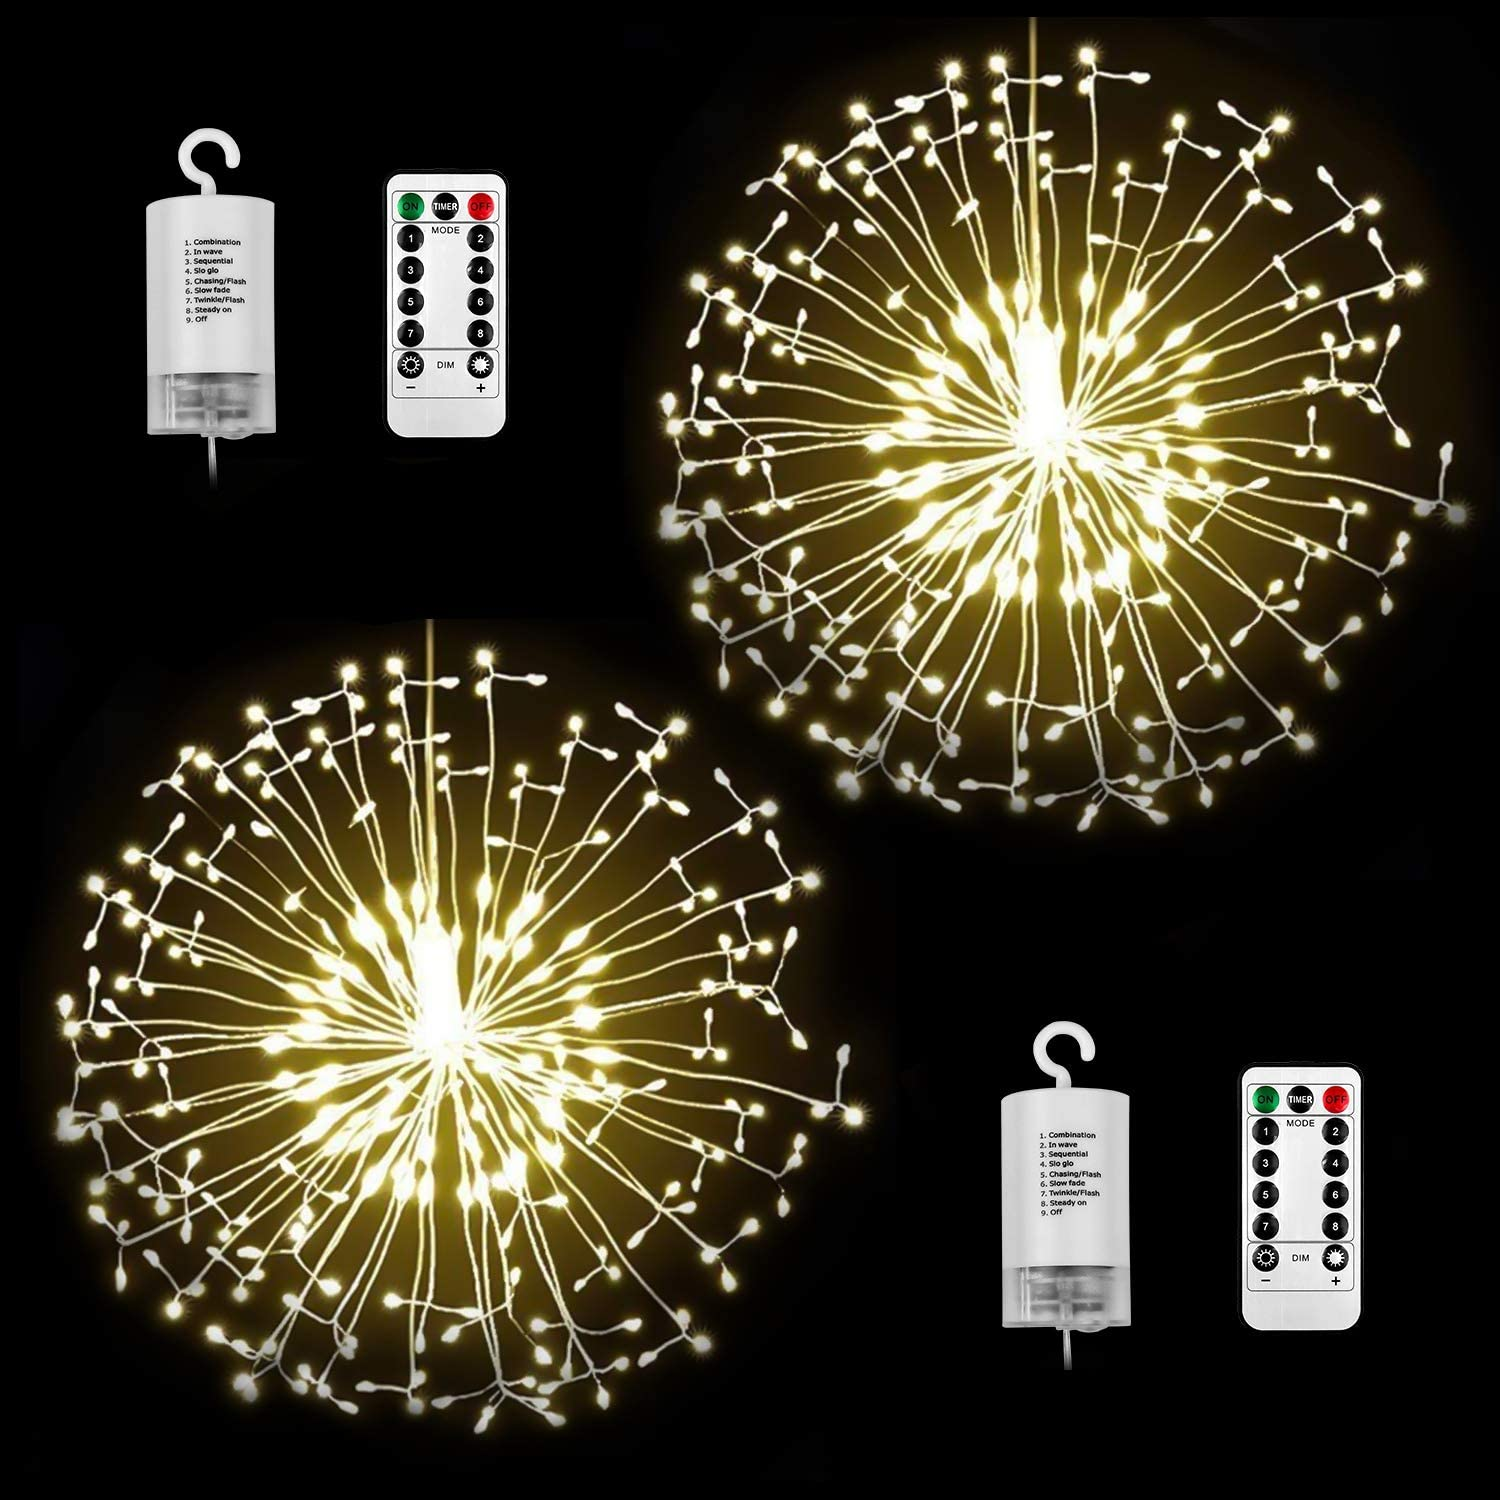 StillCool Firework Lights 2 Pack 150 LED Copper Wire Starburst Lights 8 Modes Battery Operated Fairy Lights with Remote,Waterproof Outdoor Hanging Lights for Decor Patio Garden Party Christmas